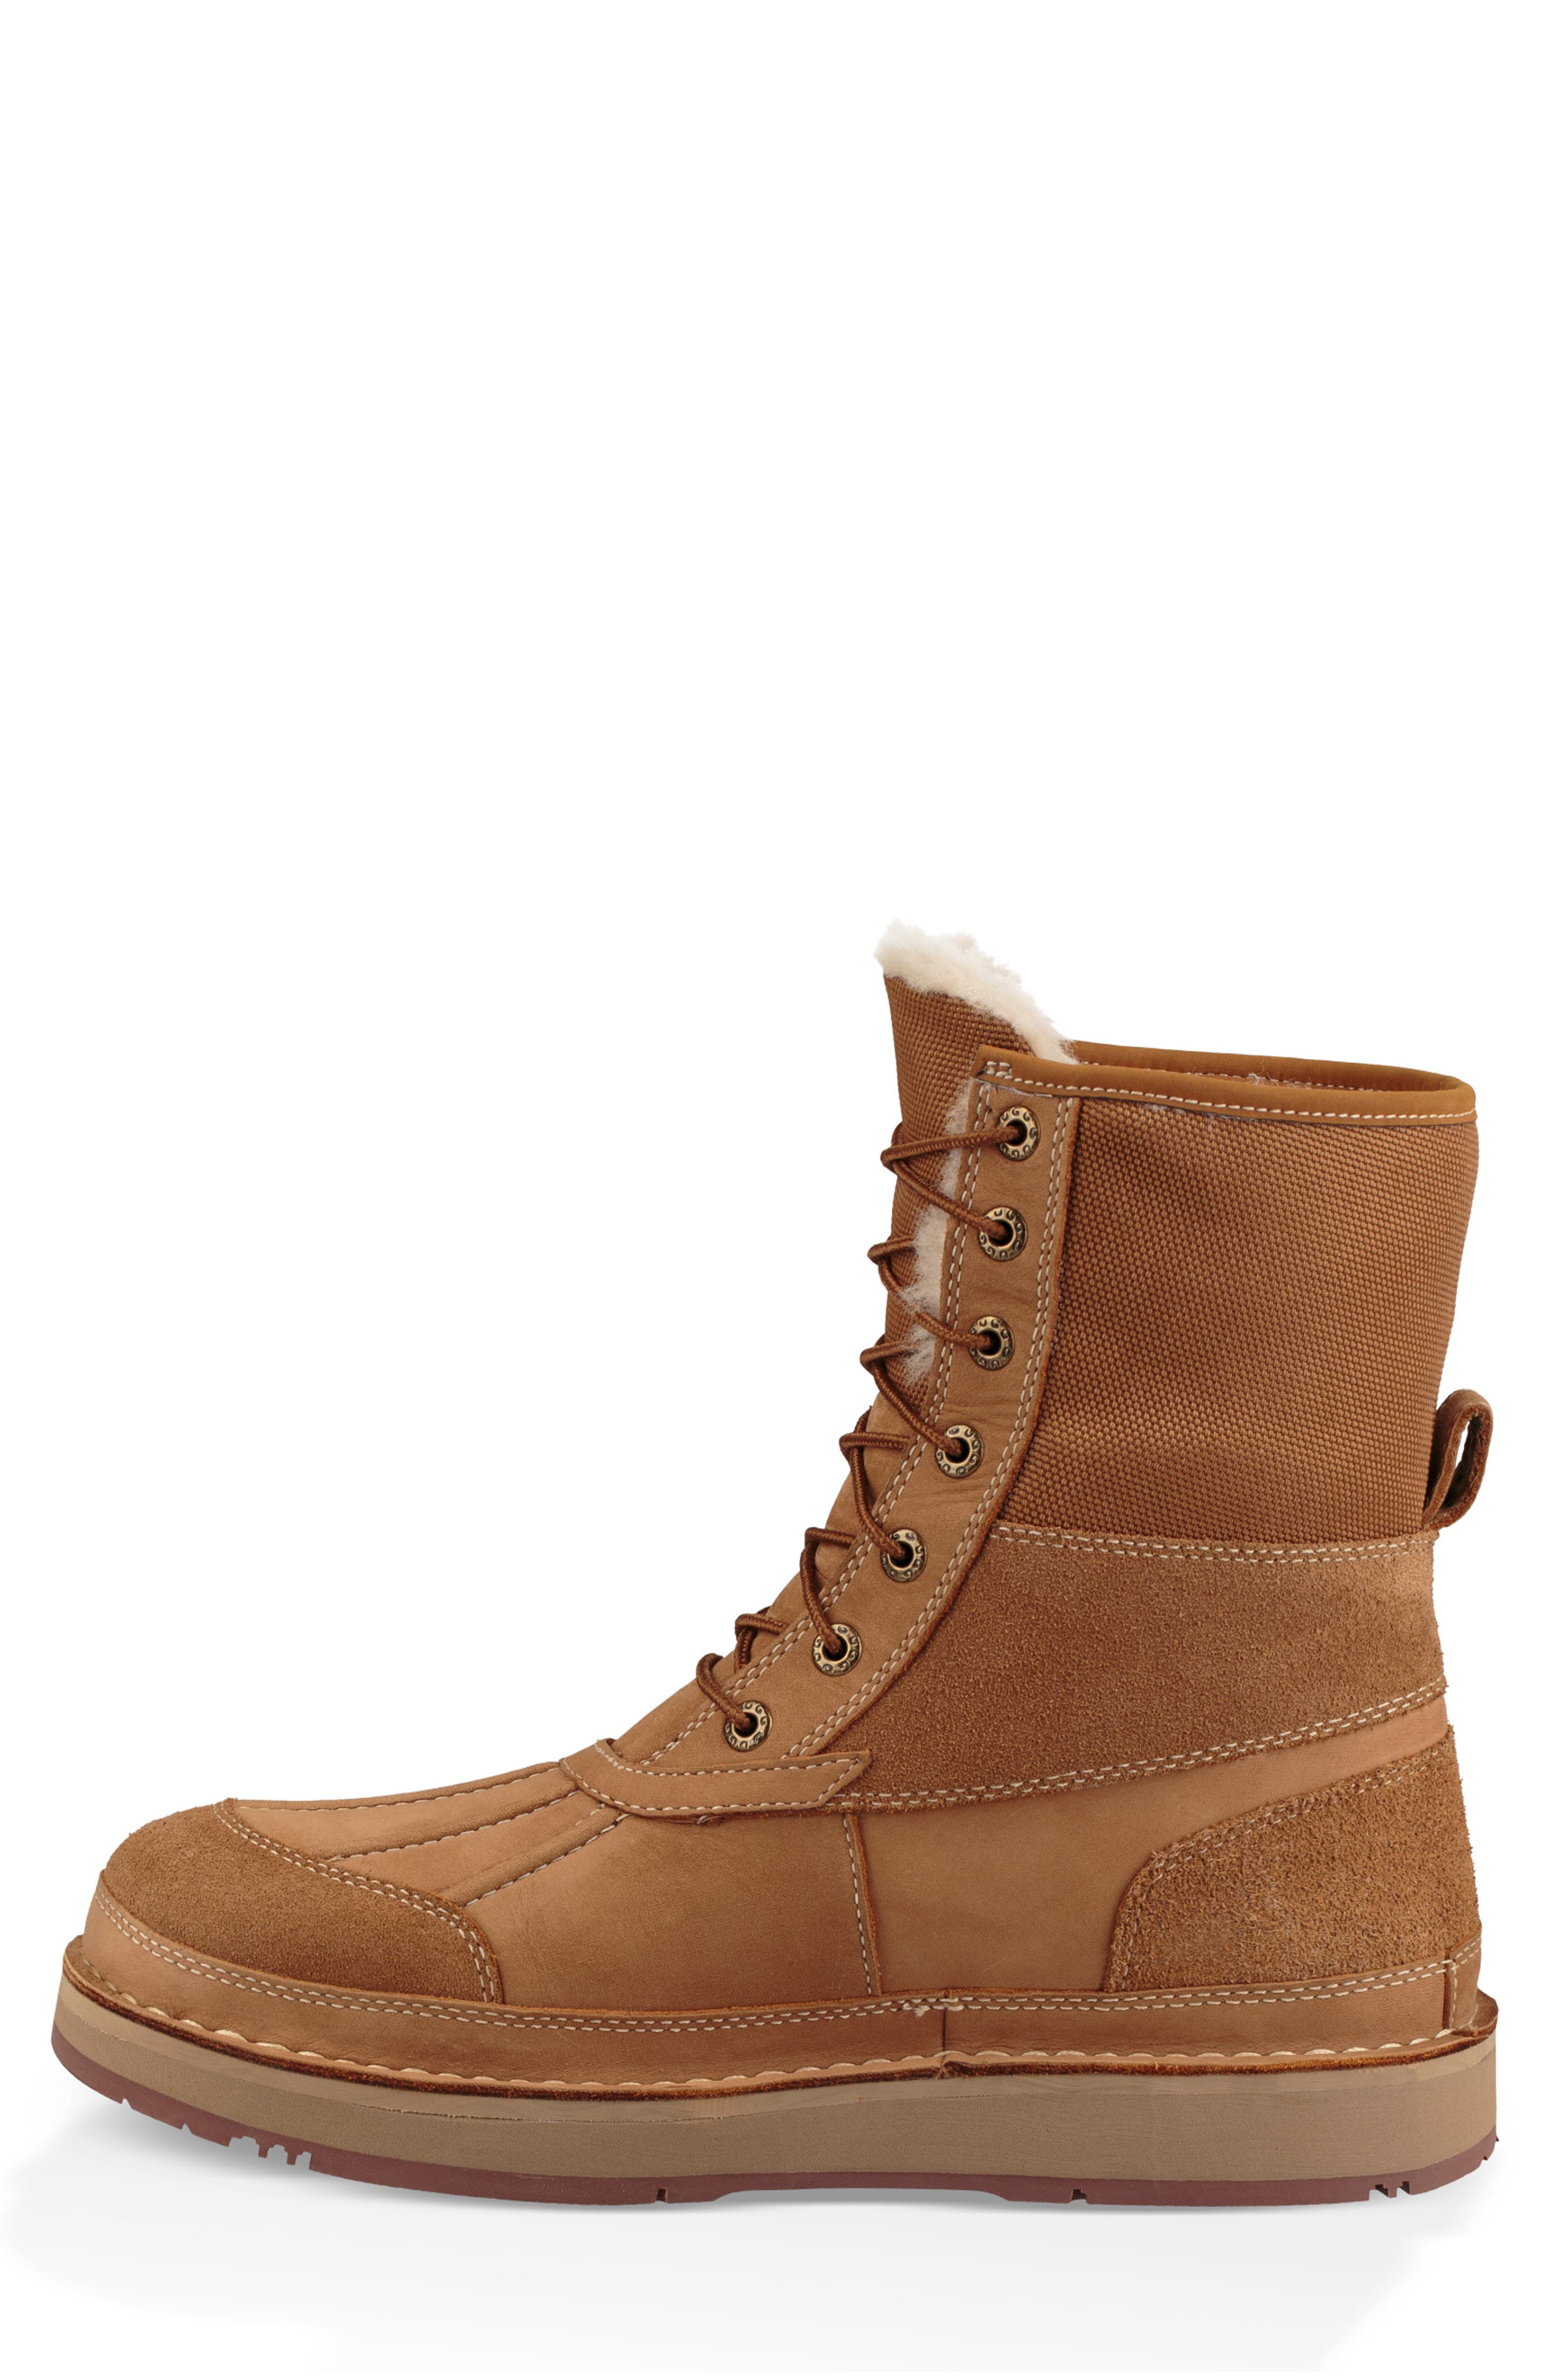 Avalanche Butte Waterproof Boot,                             Alternate thumbnail 9, color,                             CHESTNUT